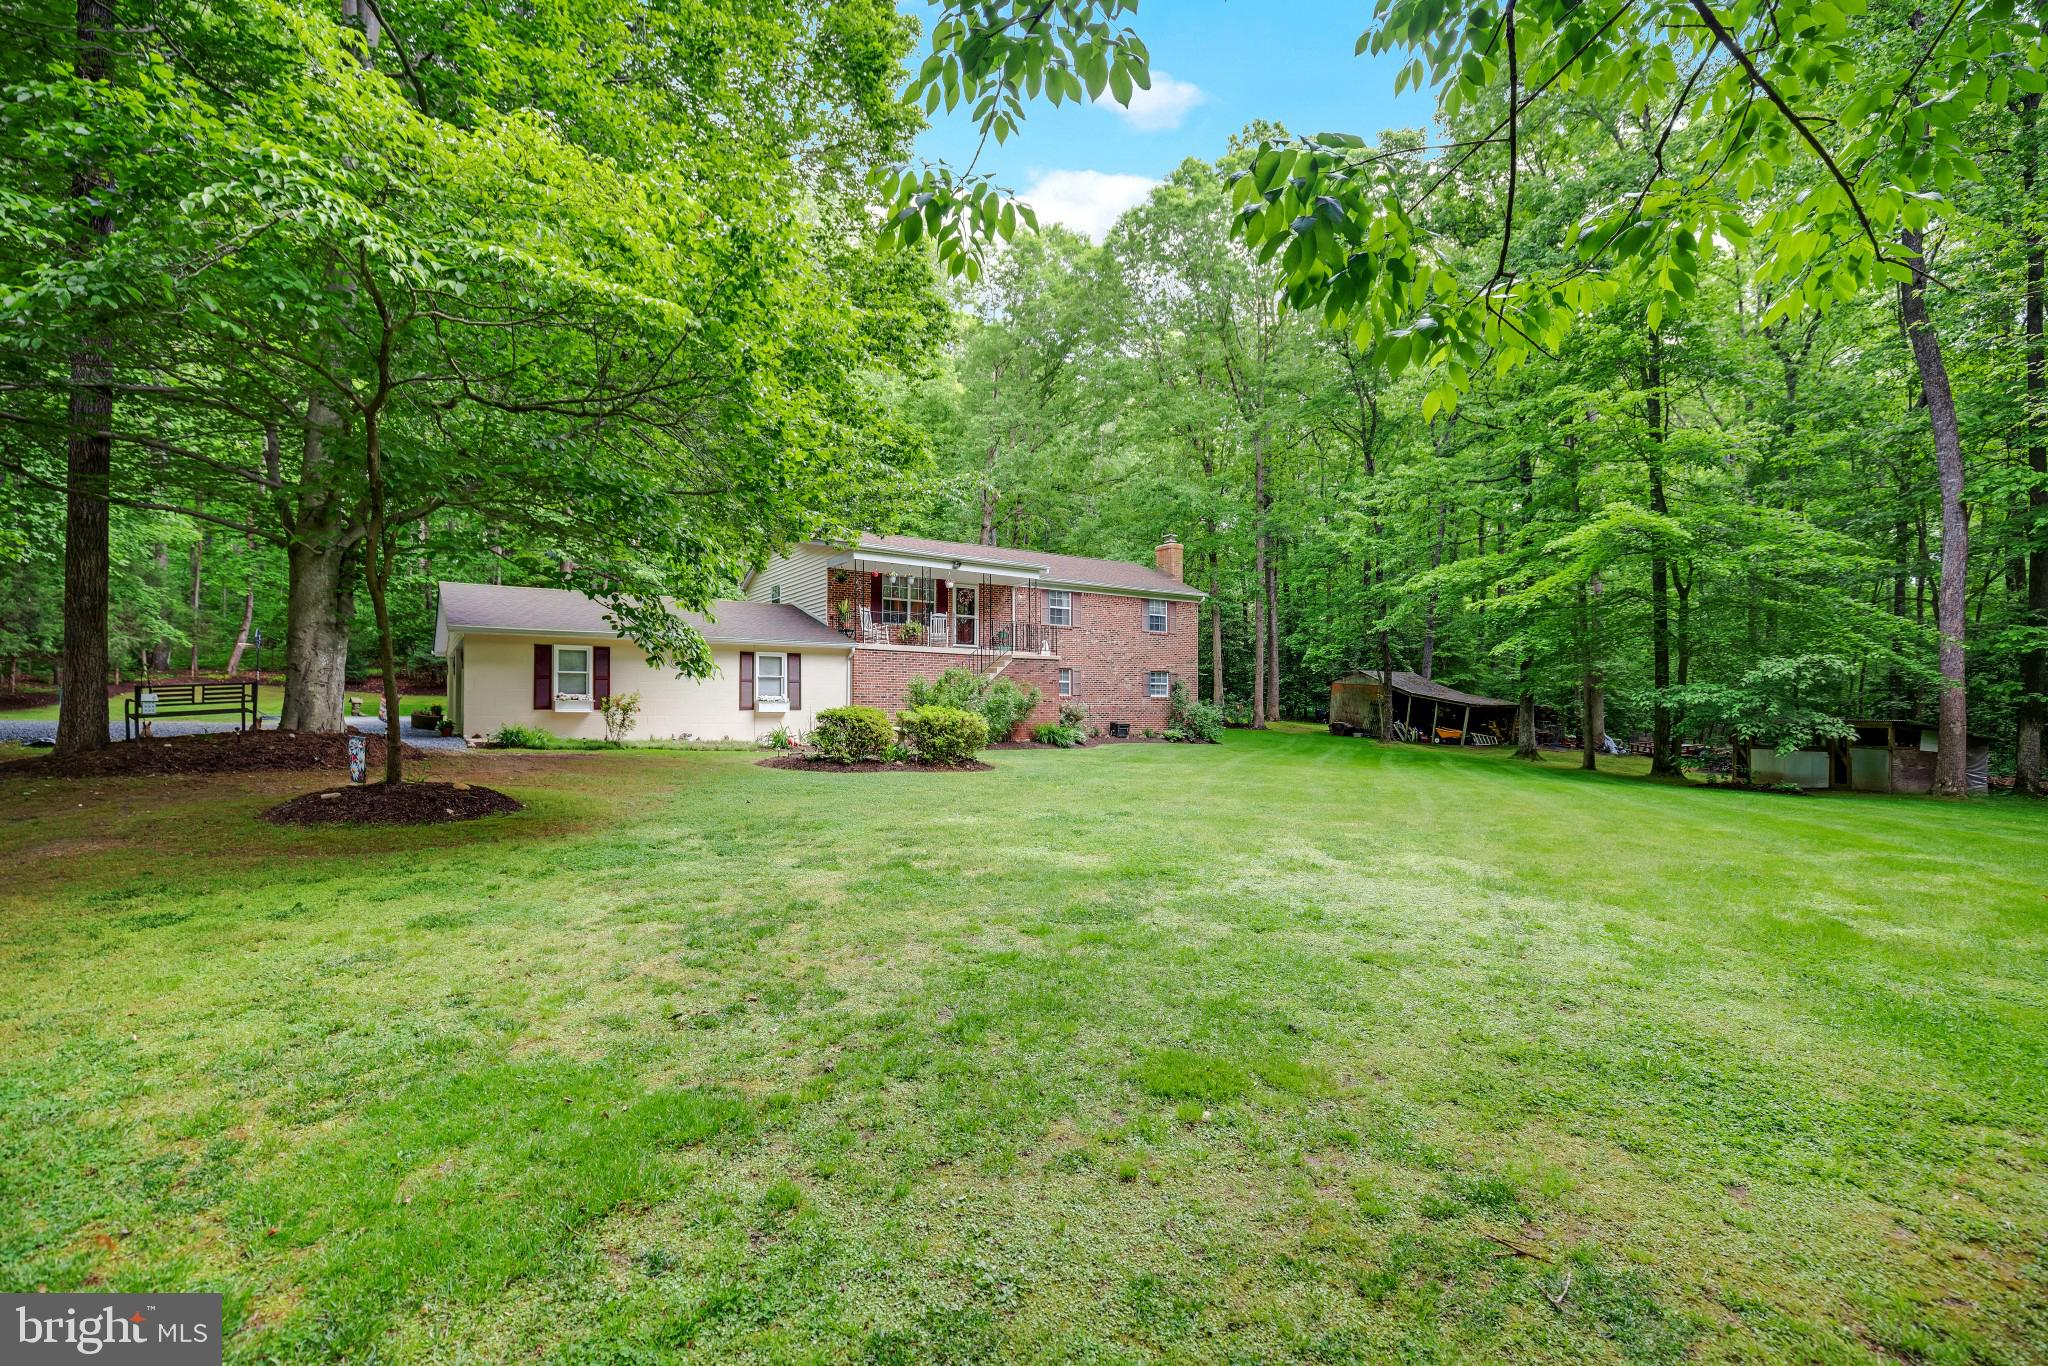 Don't miss out on this meticulously maintained home on over TWO acres in sought after Mechanicsville